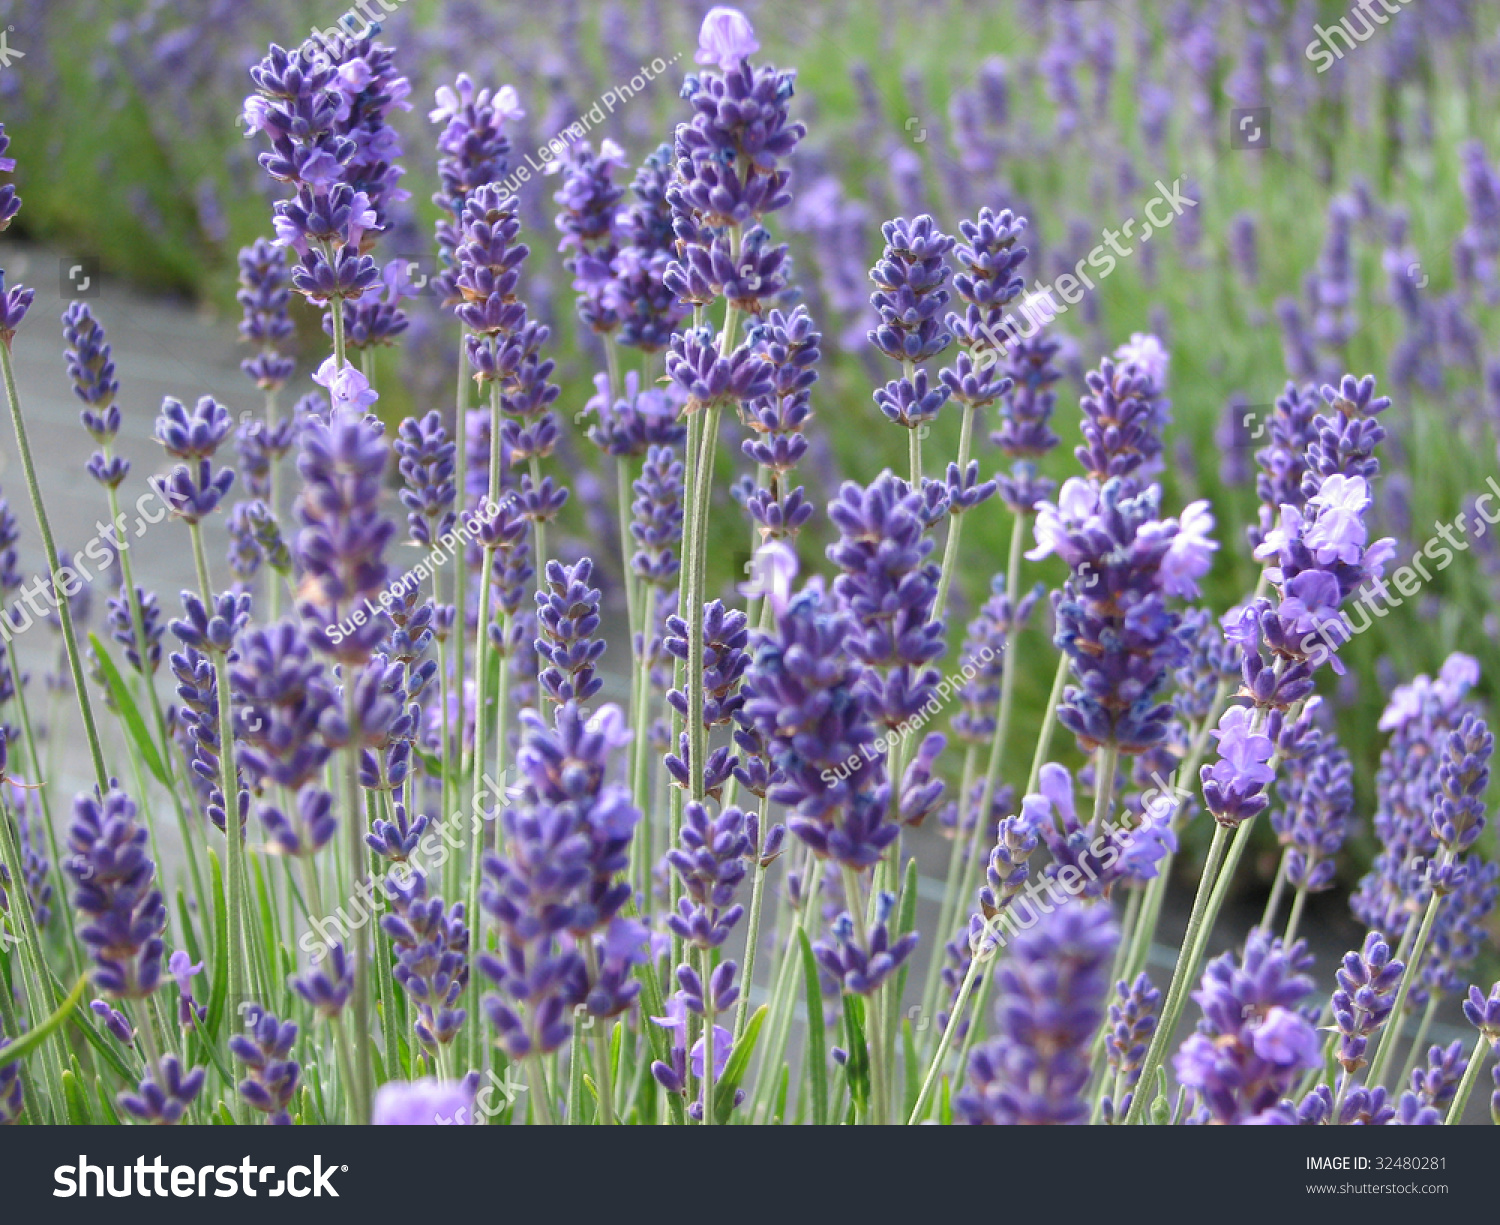 Beautiful lavender flowers in full bloom waiting to be harvested id 32480281 izmirmasajfo